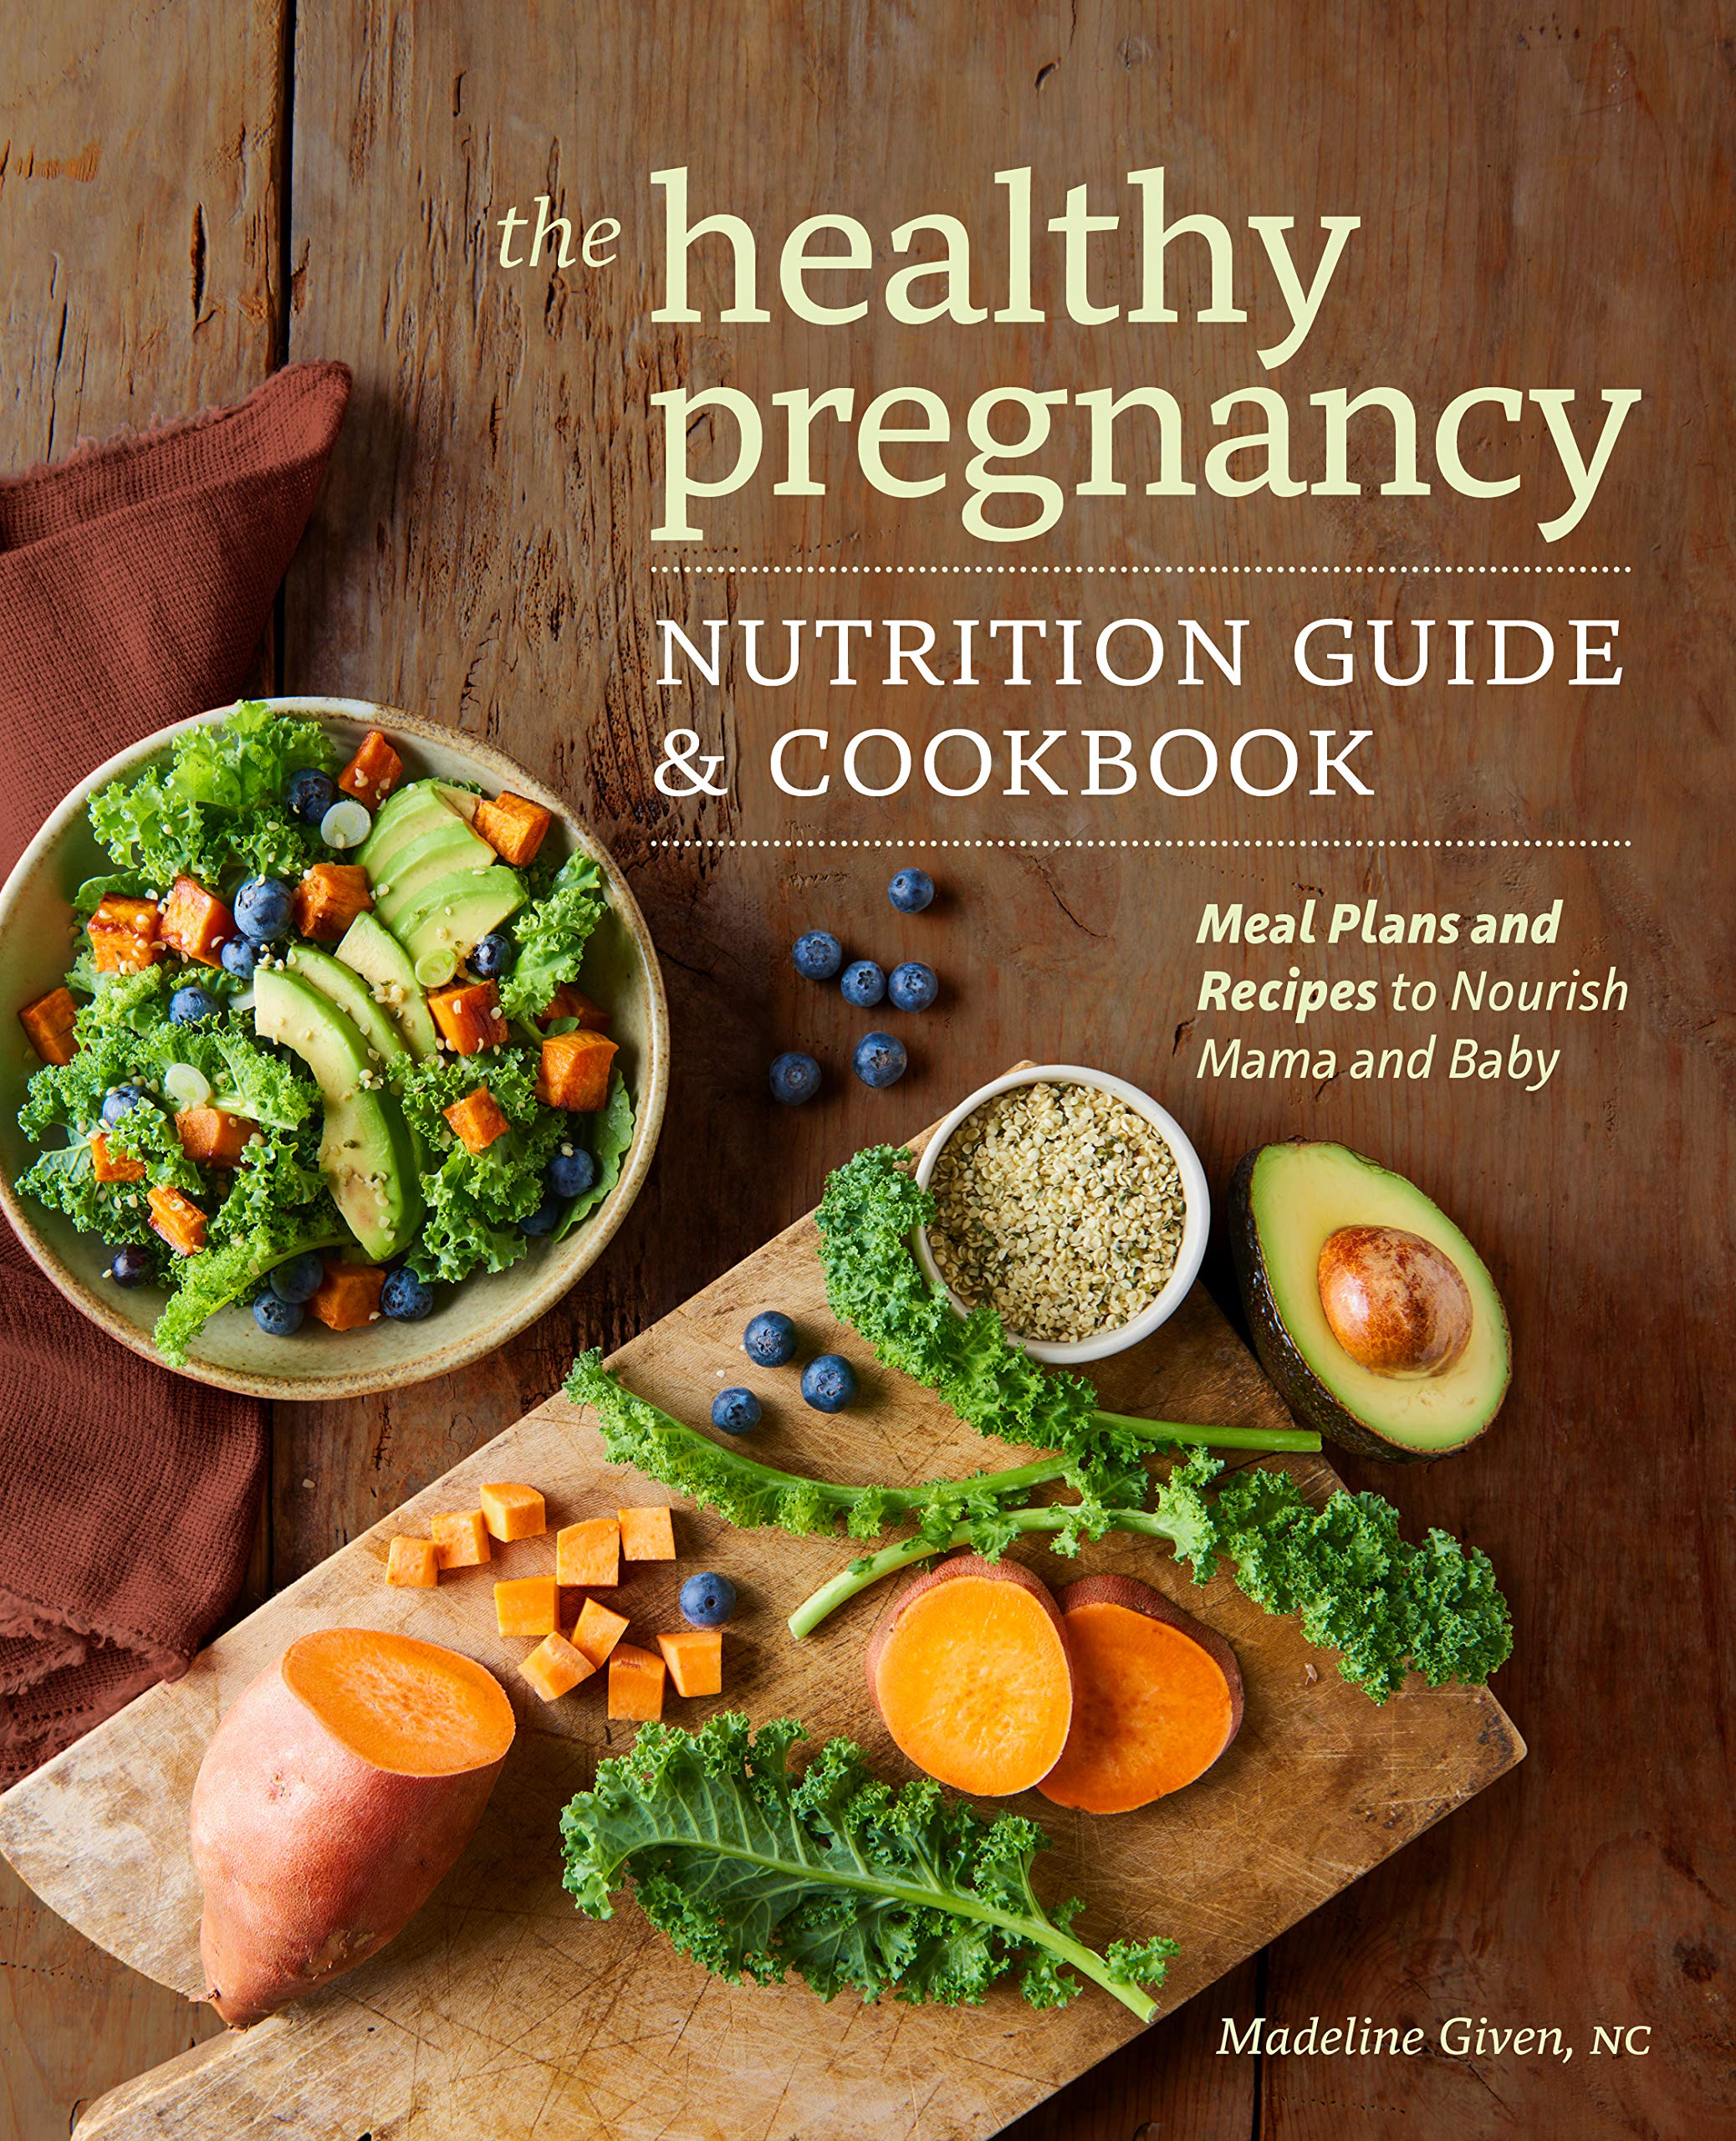 Image result for The Healthy Pregnancy Nutrition Guide & Cookbook: Meal Plans and Recipes to Nourish Mama and Baby